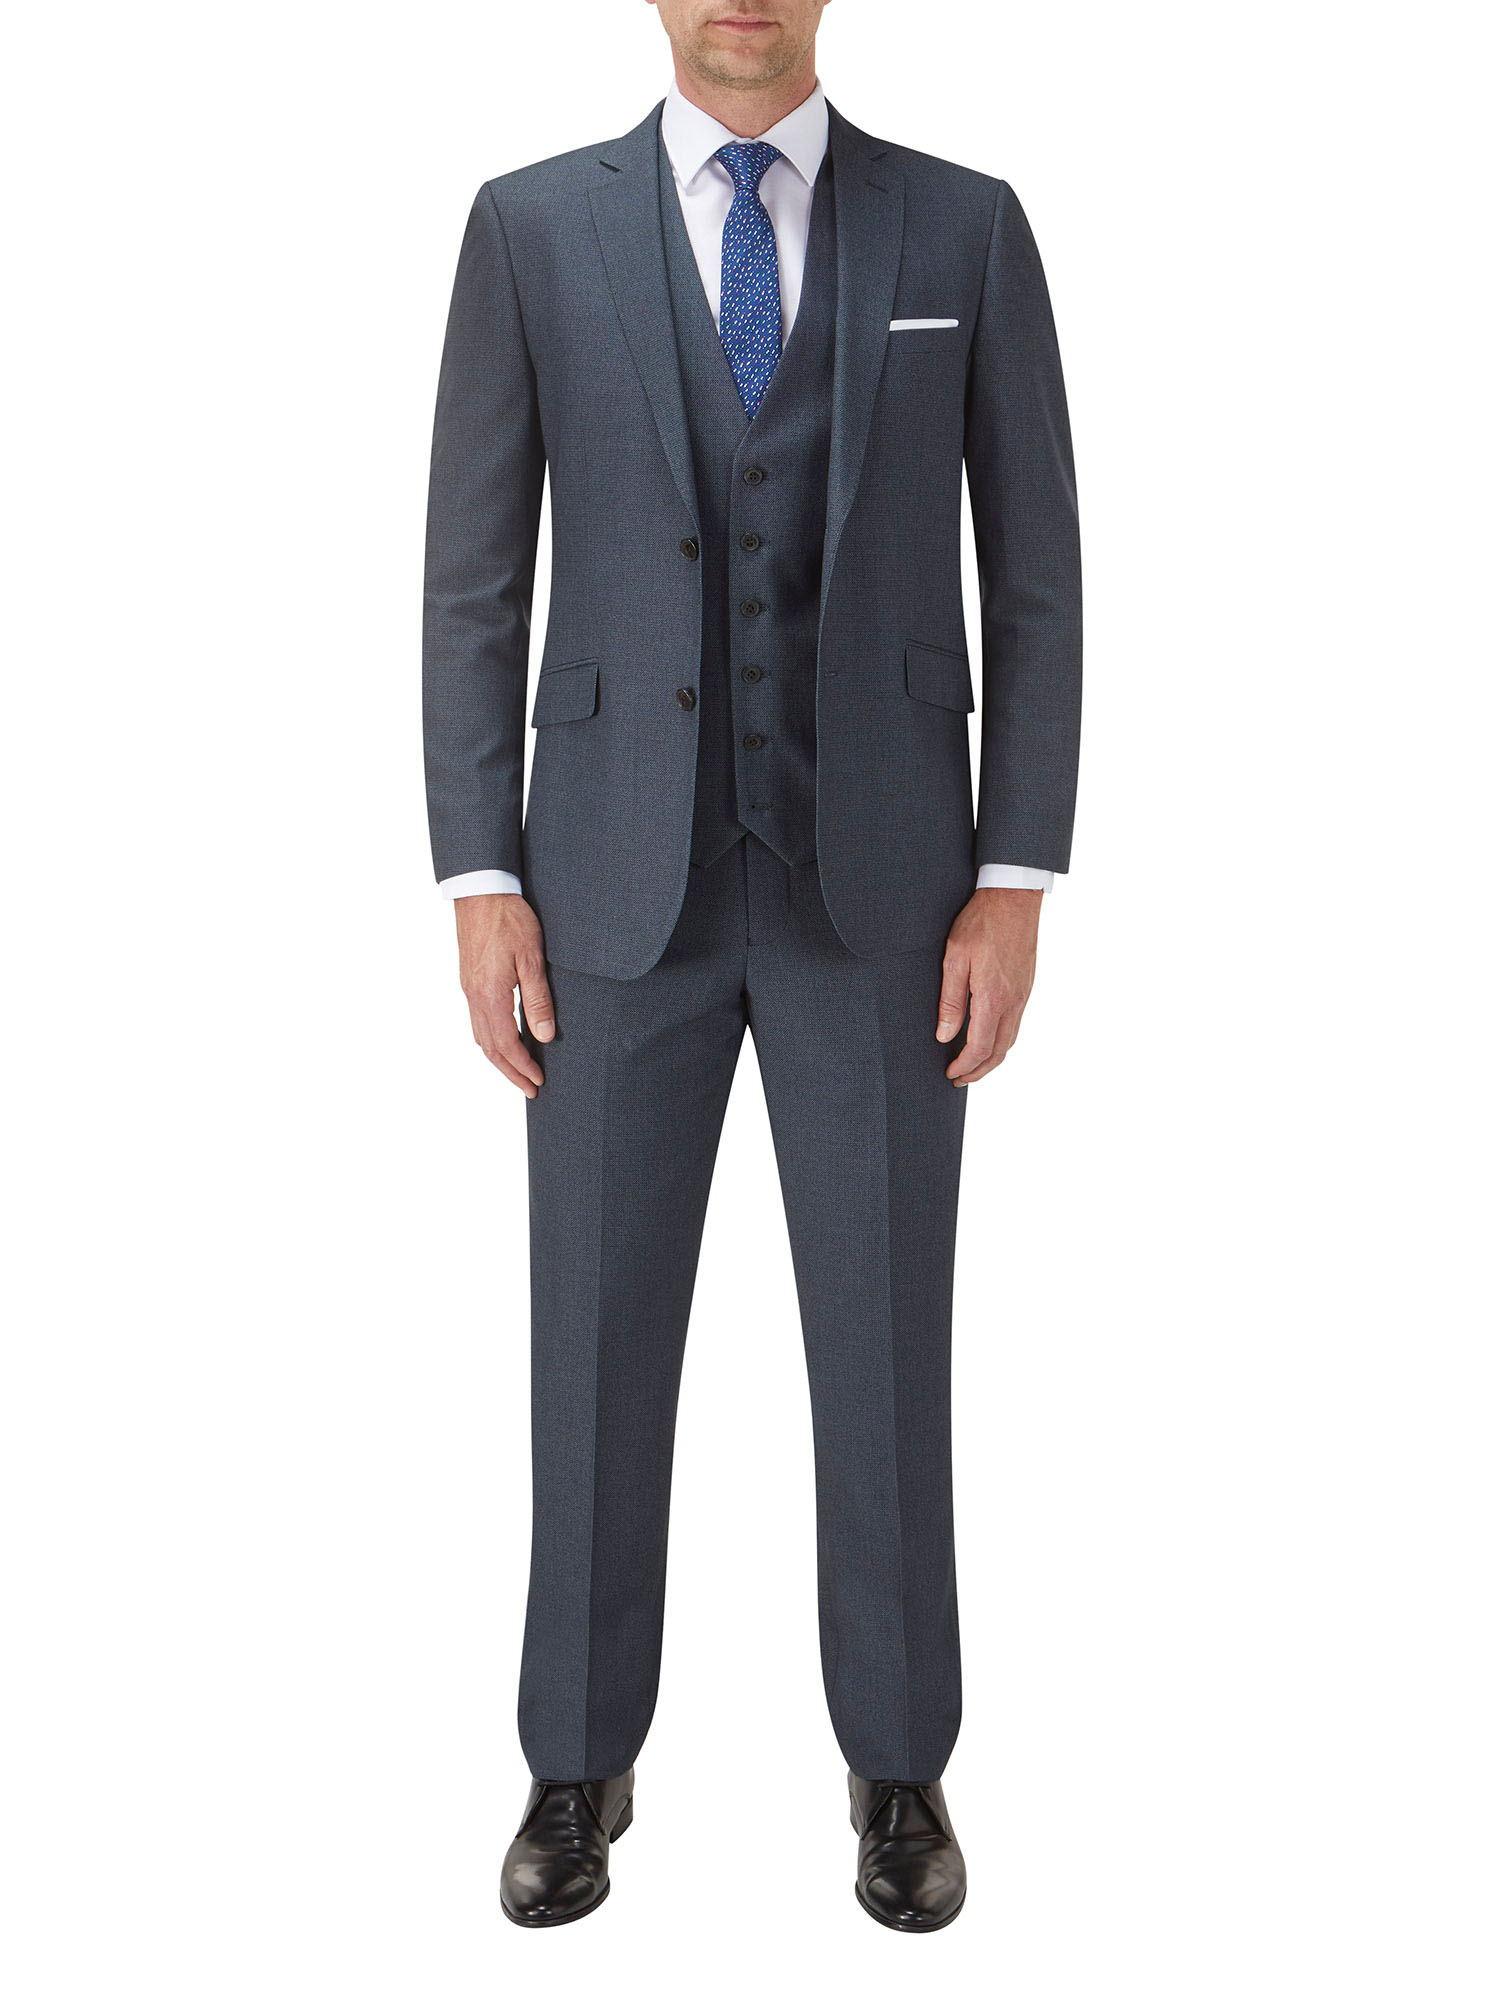 73e3be09f43a Harcourt Tailored Blue 3 Piece Suit - Tom Murphy's Formal and Menswear